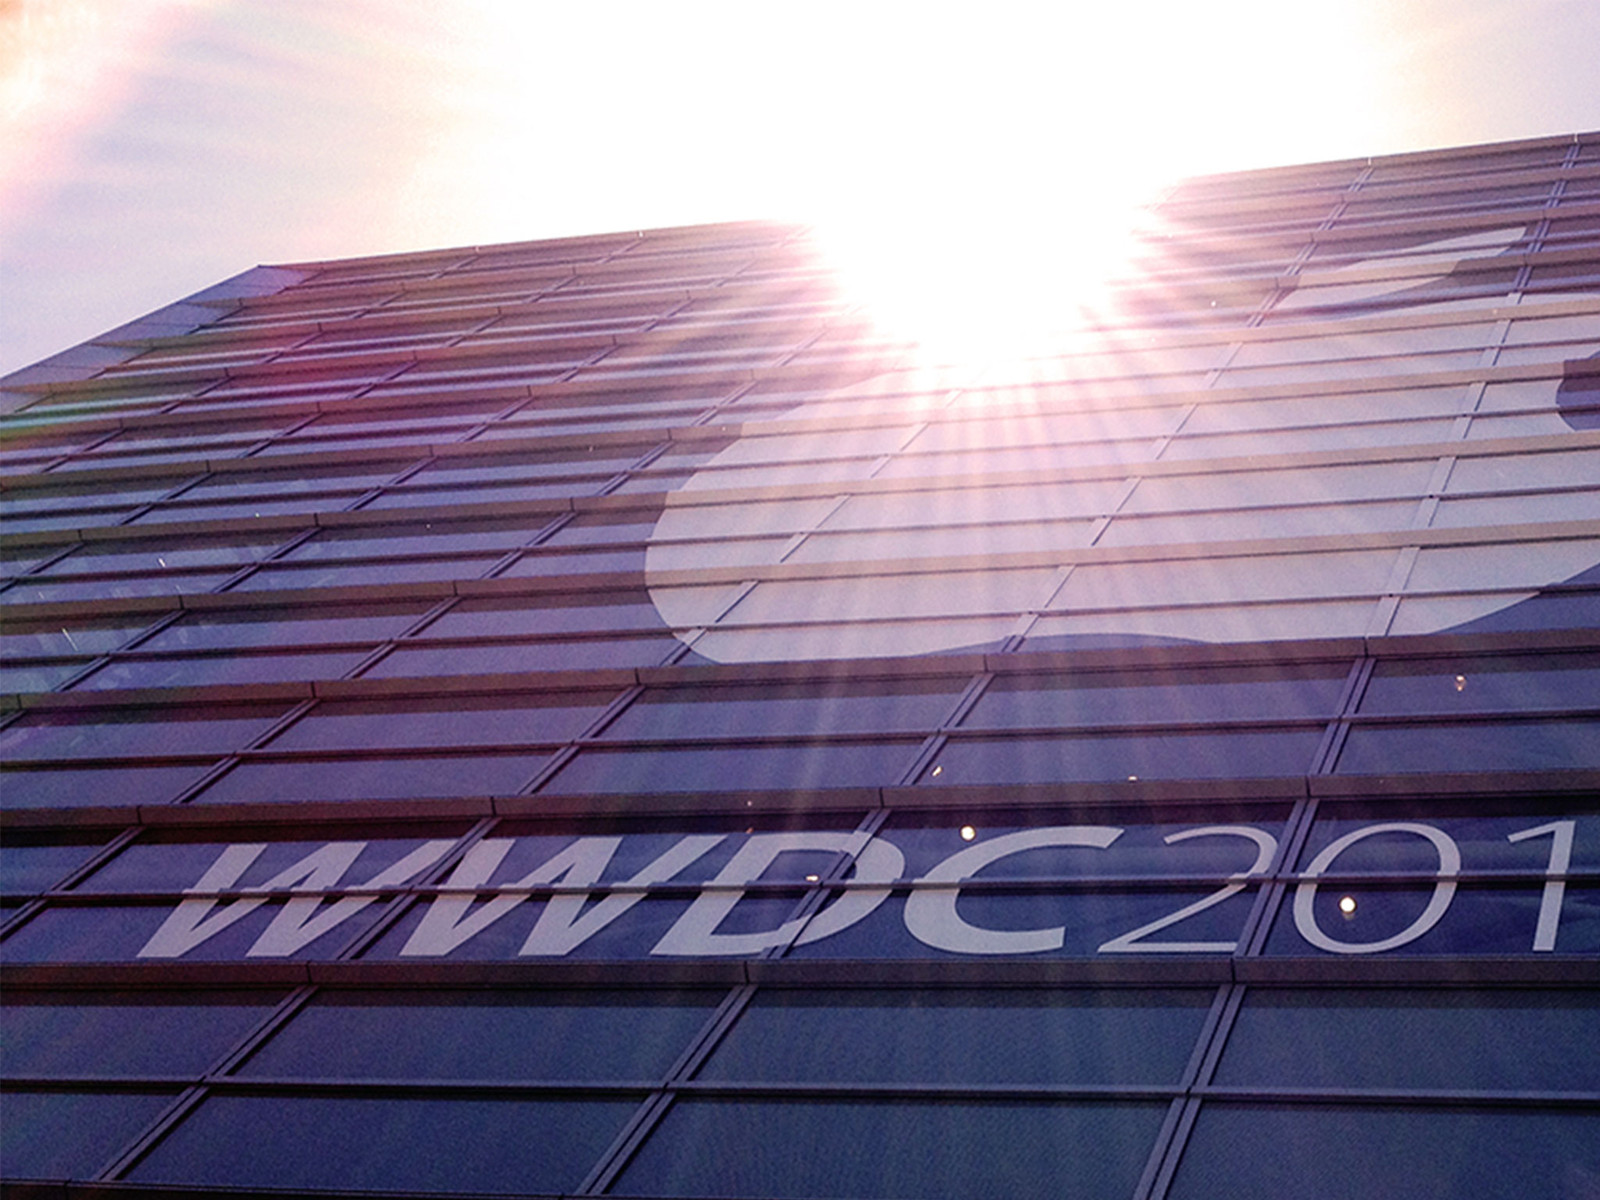 WWDC 2015 already speculated to kick off June 8